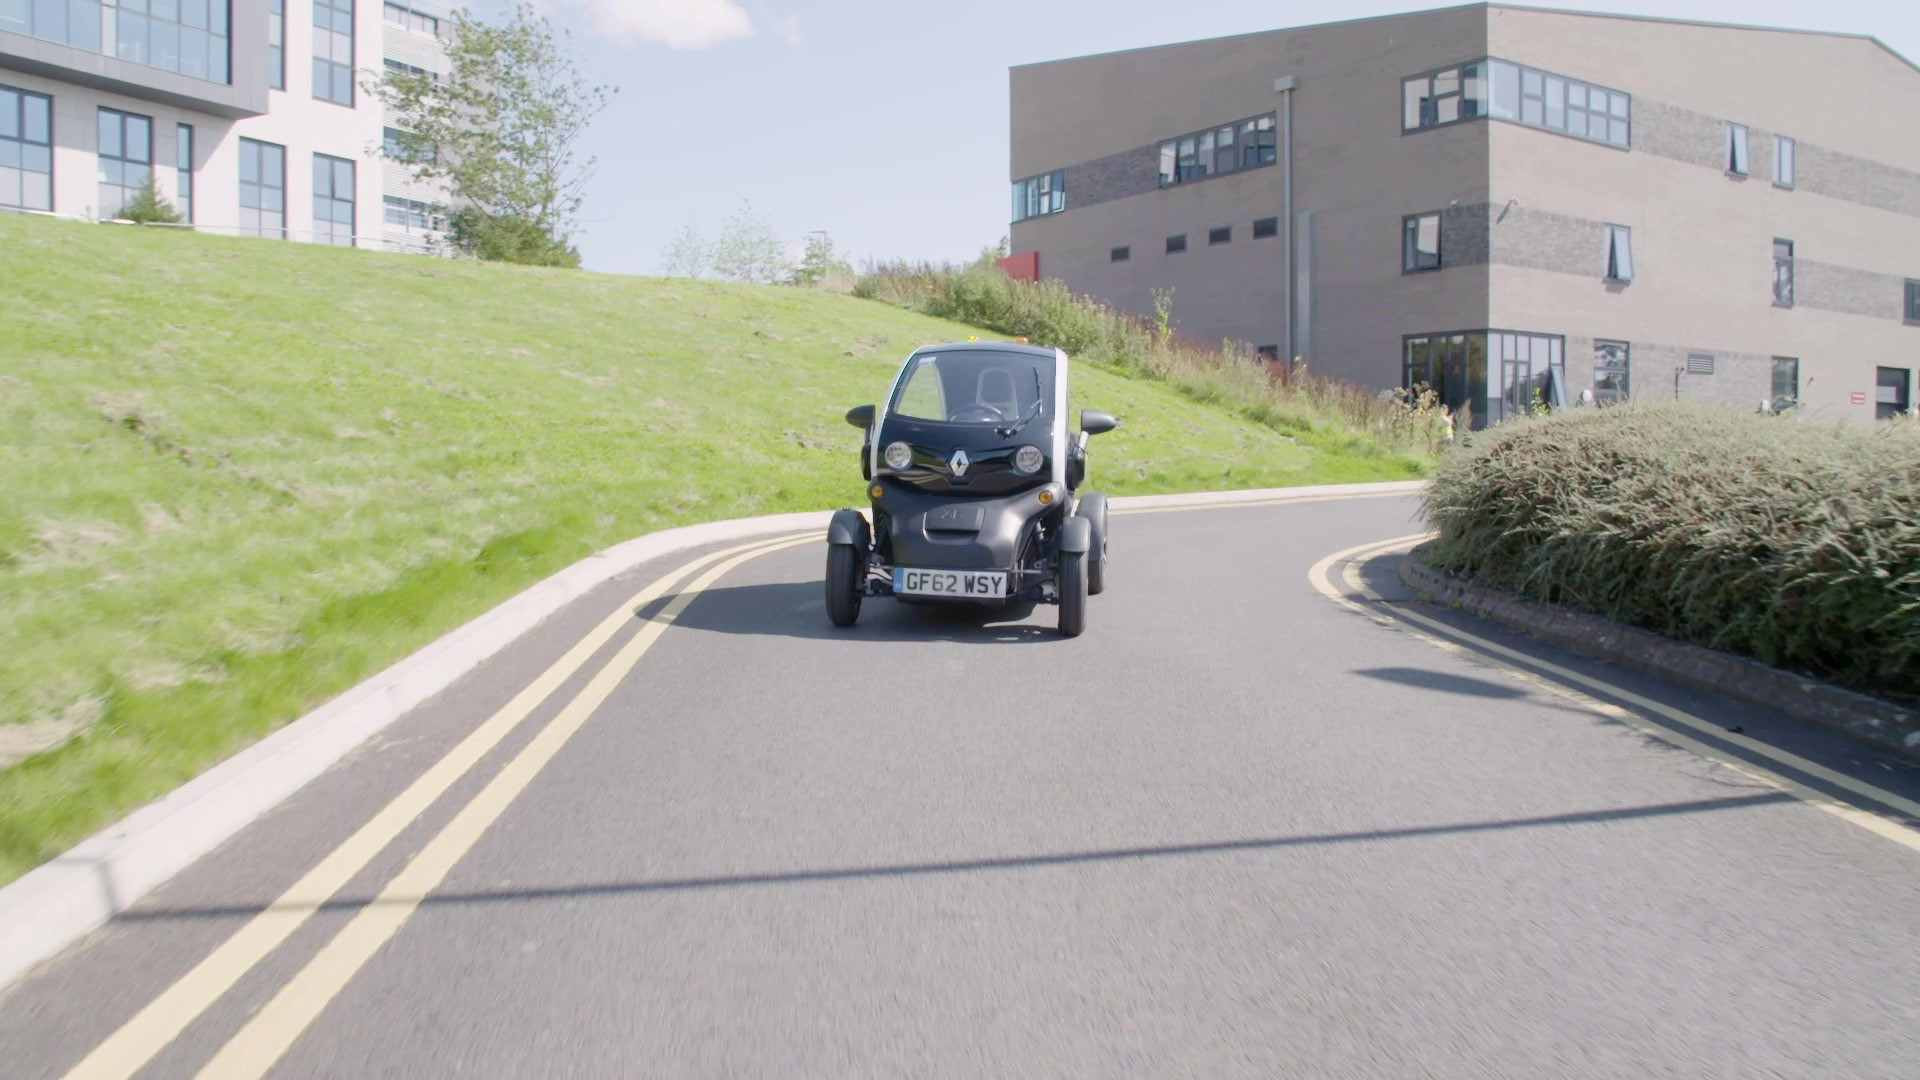 Driverless Smart Car on the road